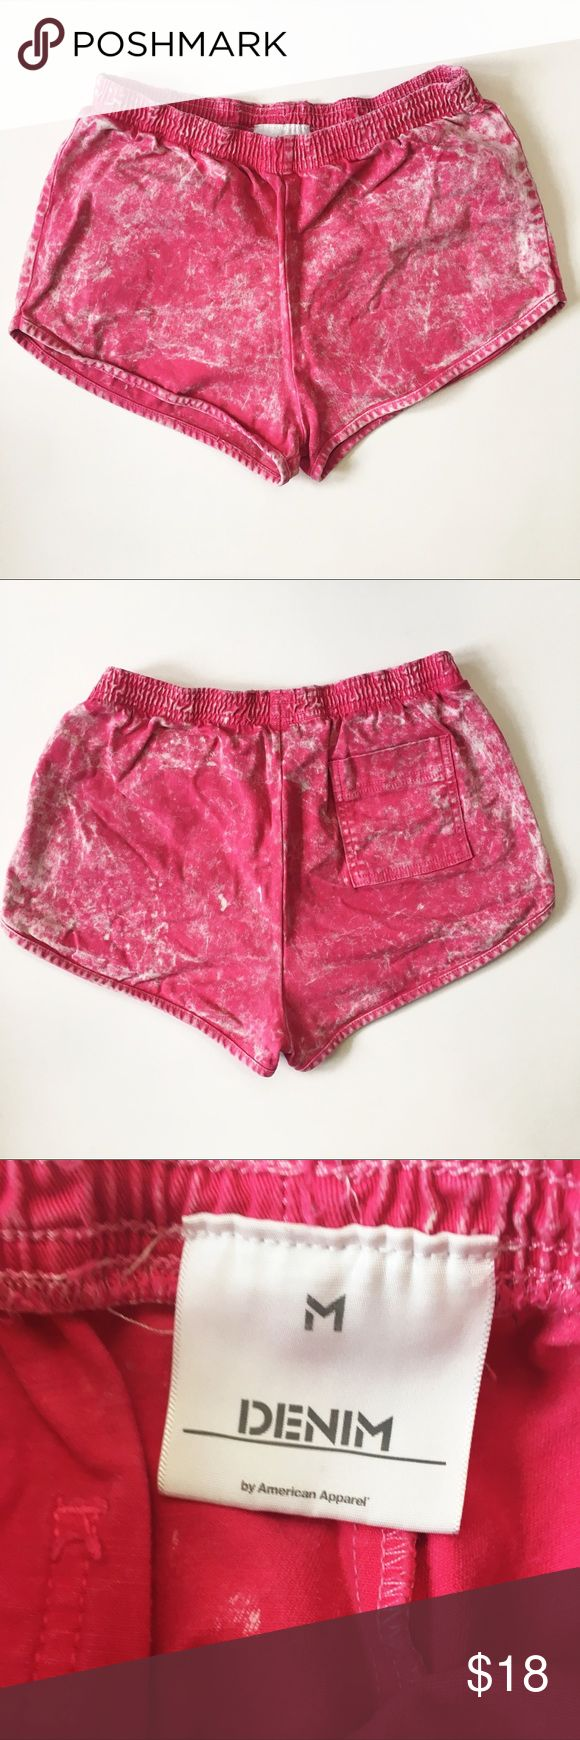 "American Apparel Hi-Waisted Pink Acid Wash Shorts Preloved American Apparel pink high waisted, acid wash shorts in size medium.   98% cotton 2% elastane  Waist: 25"" Rise: 10.5"" Inseam: 1.5"" American Apparel Shorts Jean Shorts"